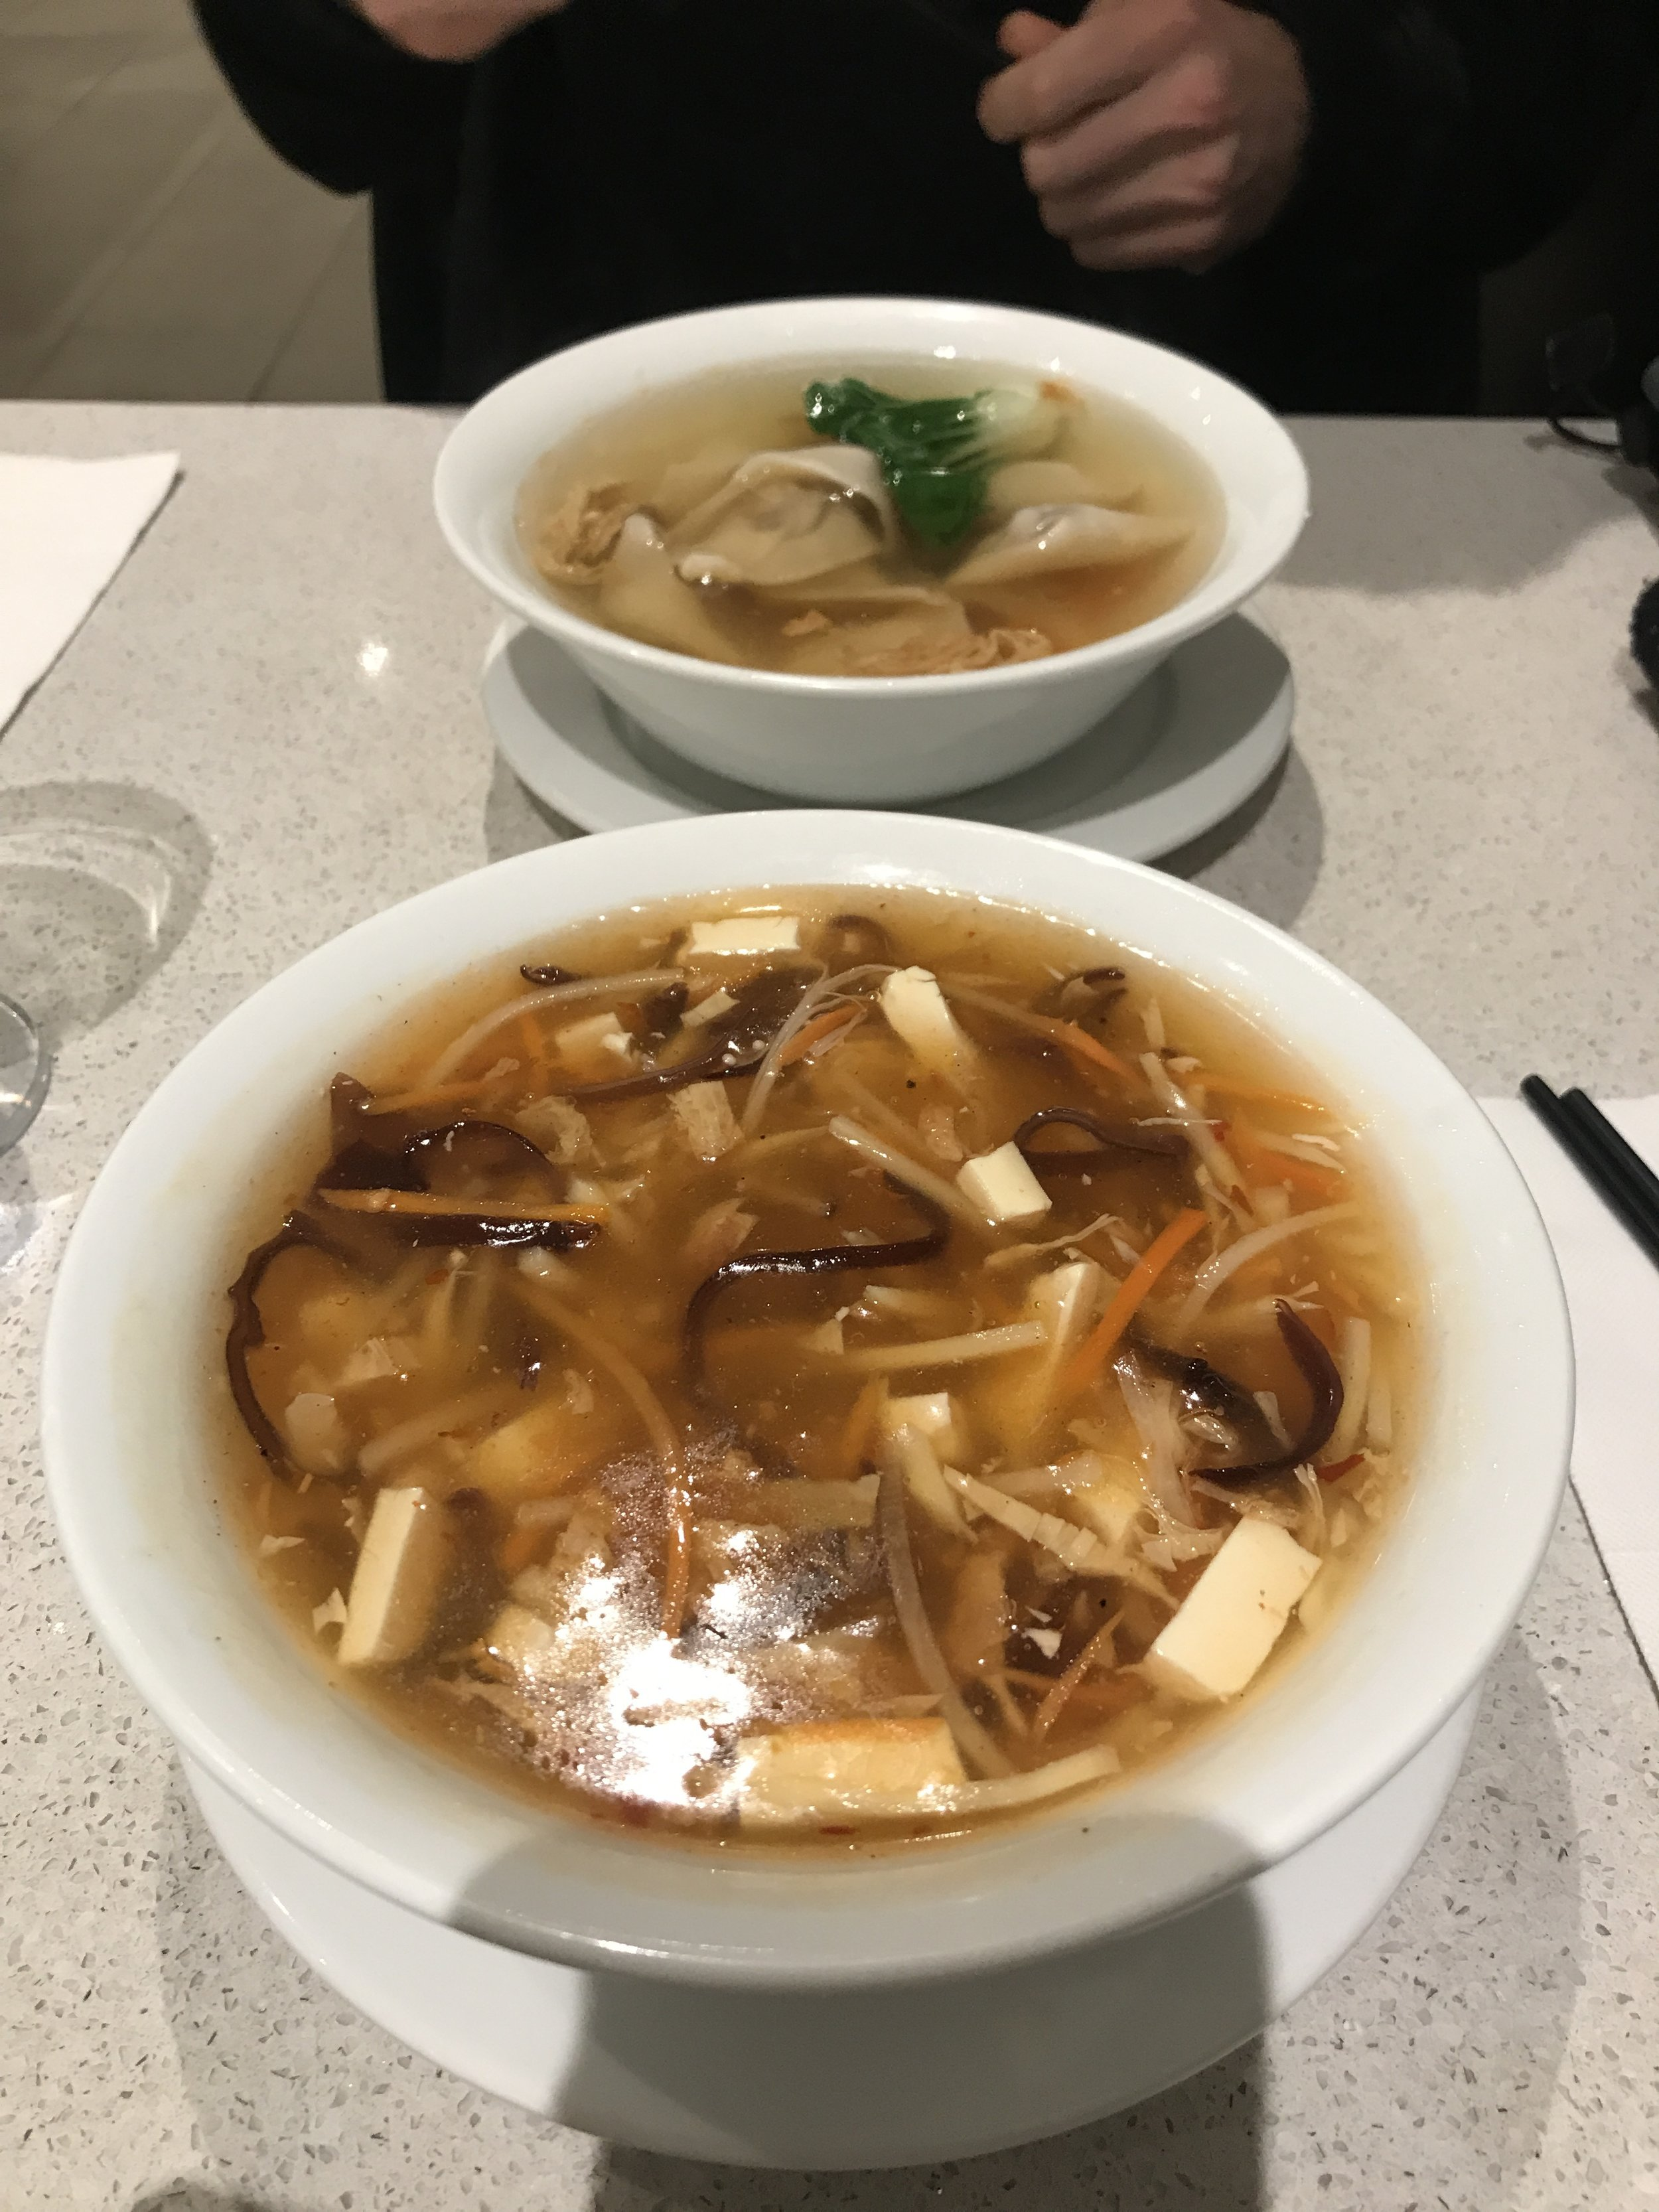 The sour soup